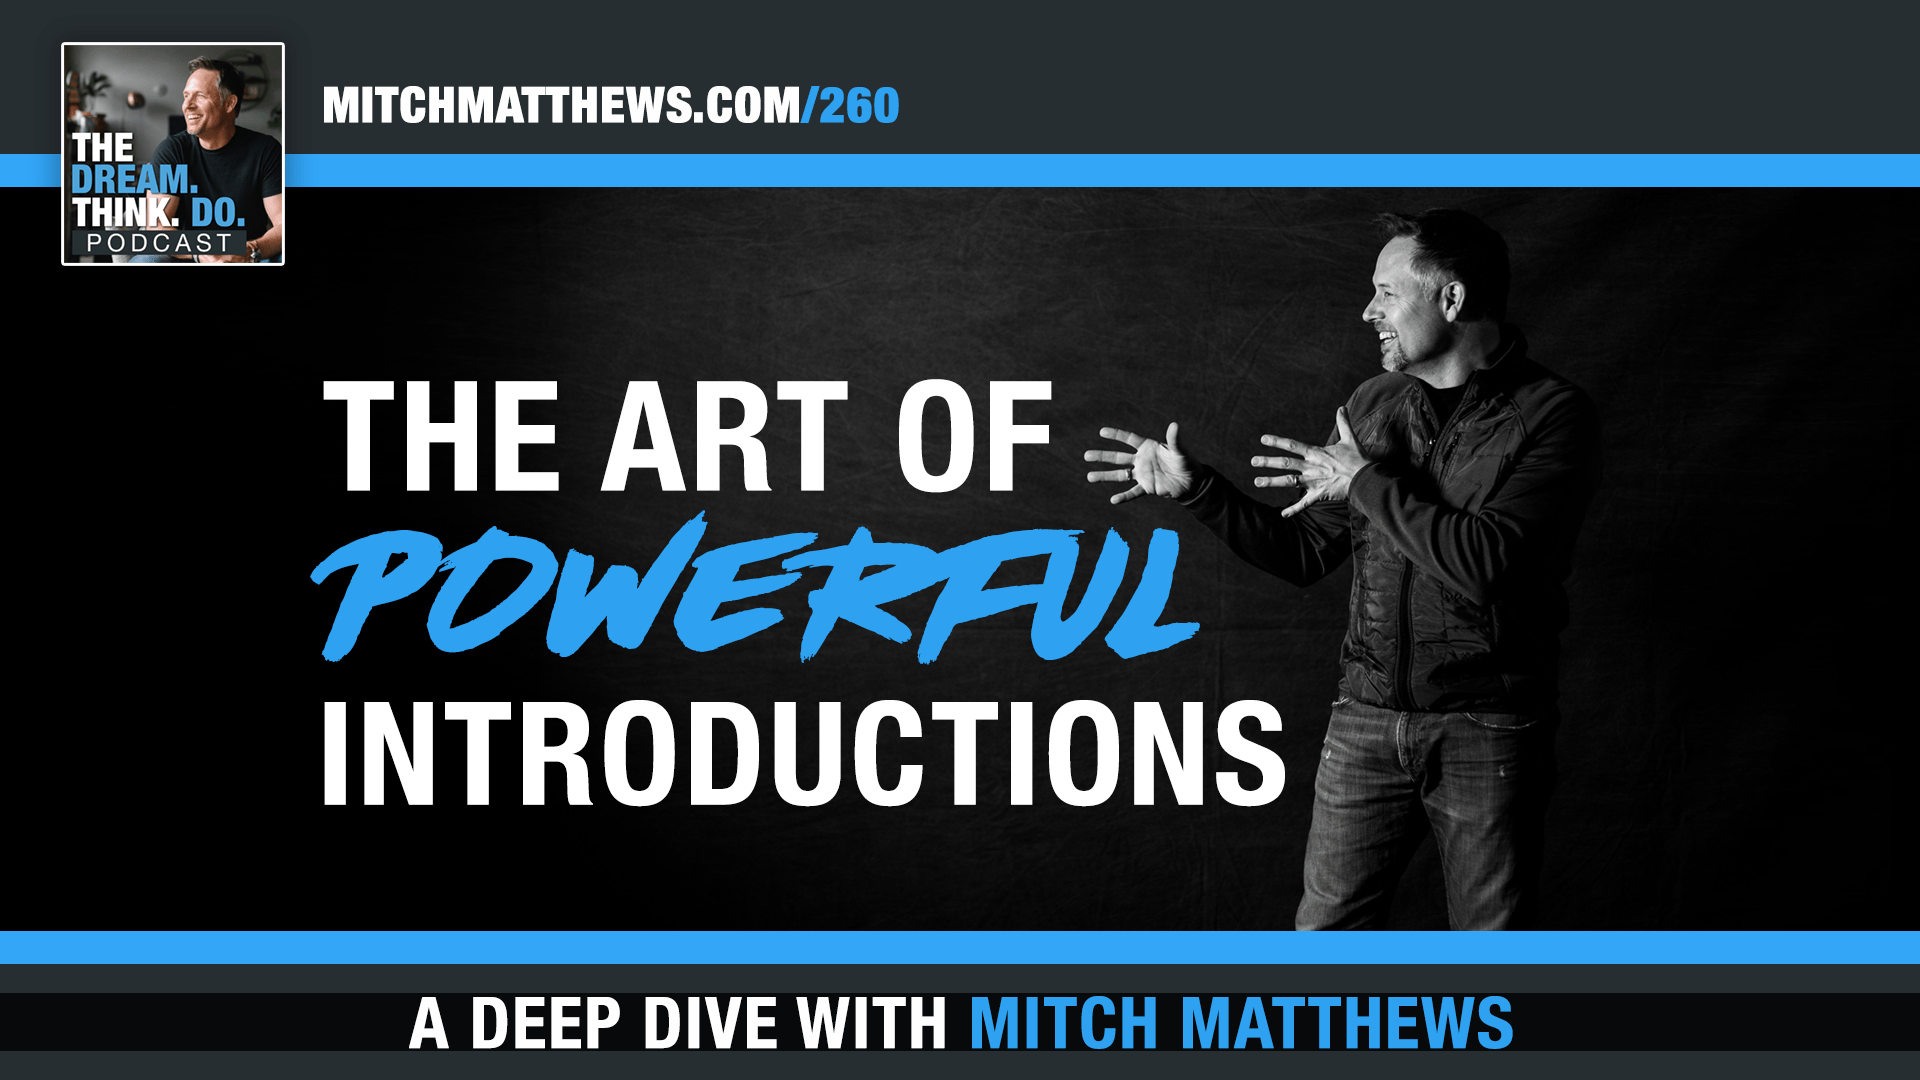 The Art of Powerful Introductions with Mitch Matthews